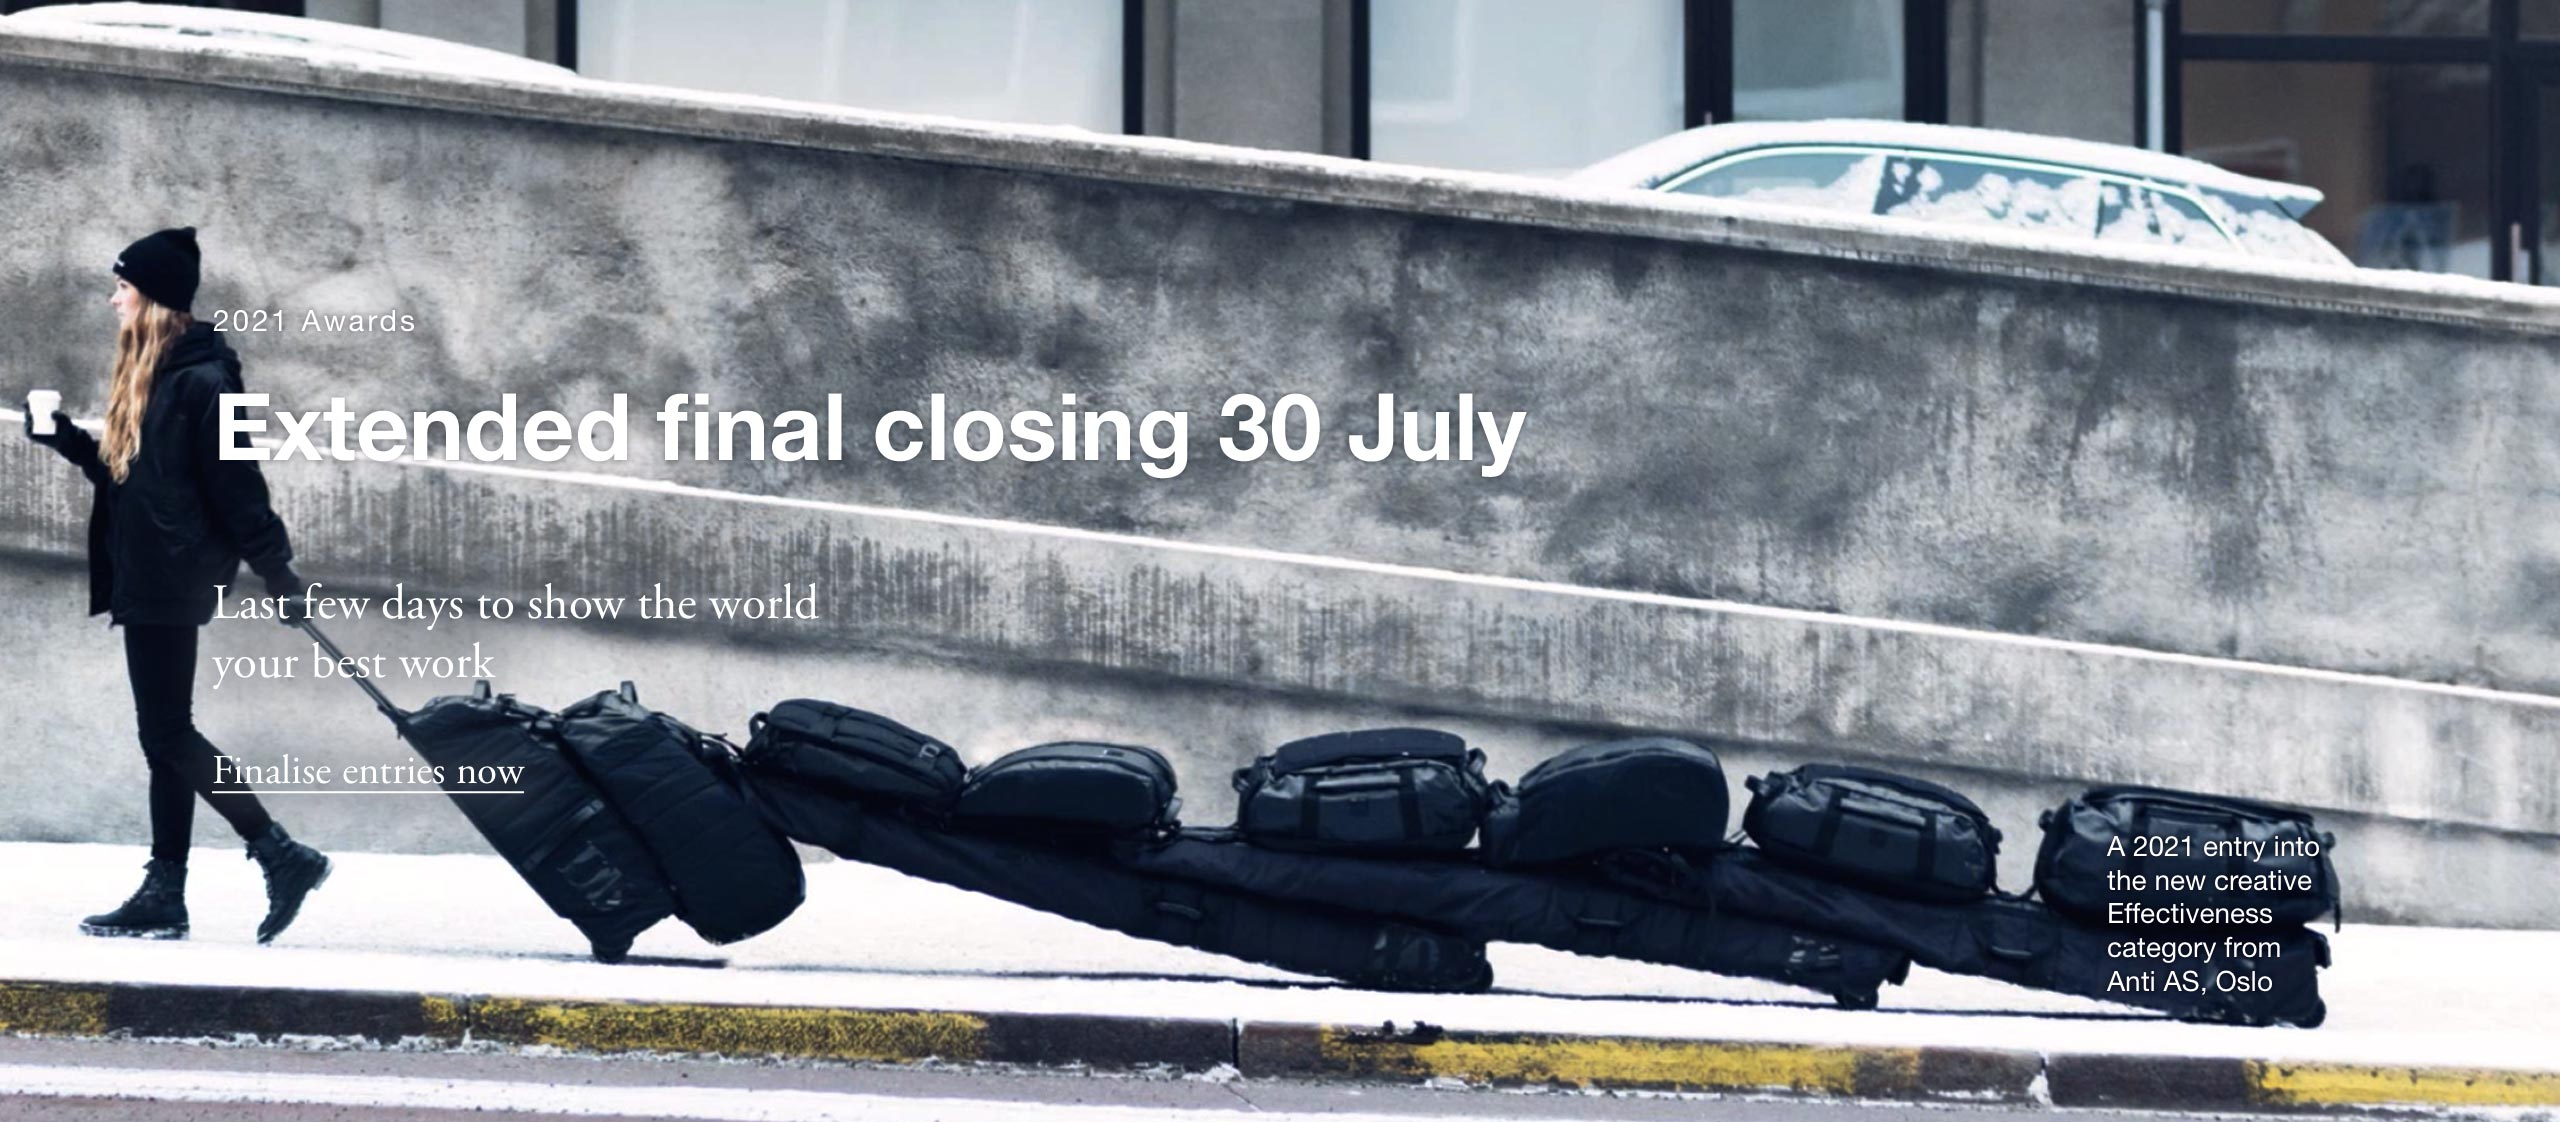 Extended final closing